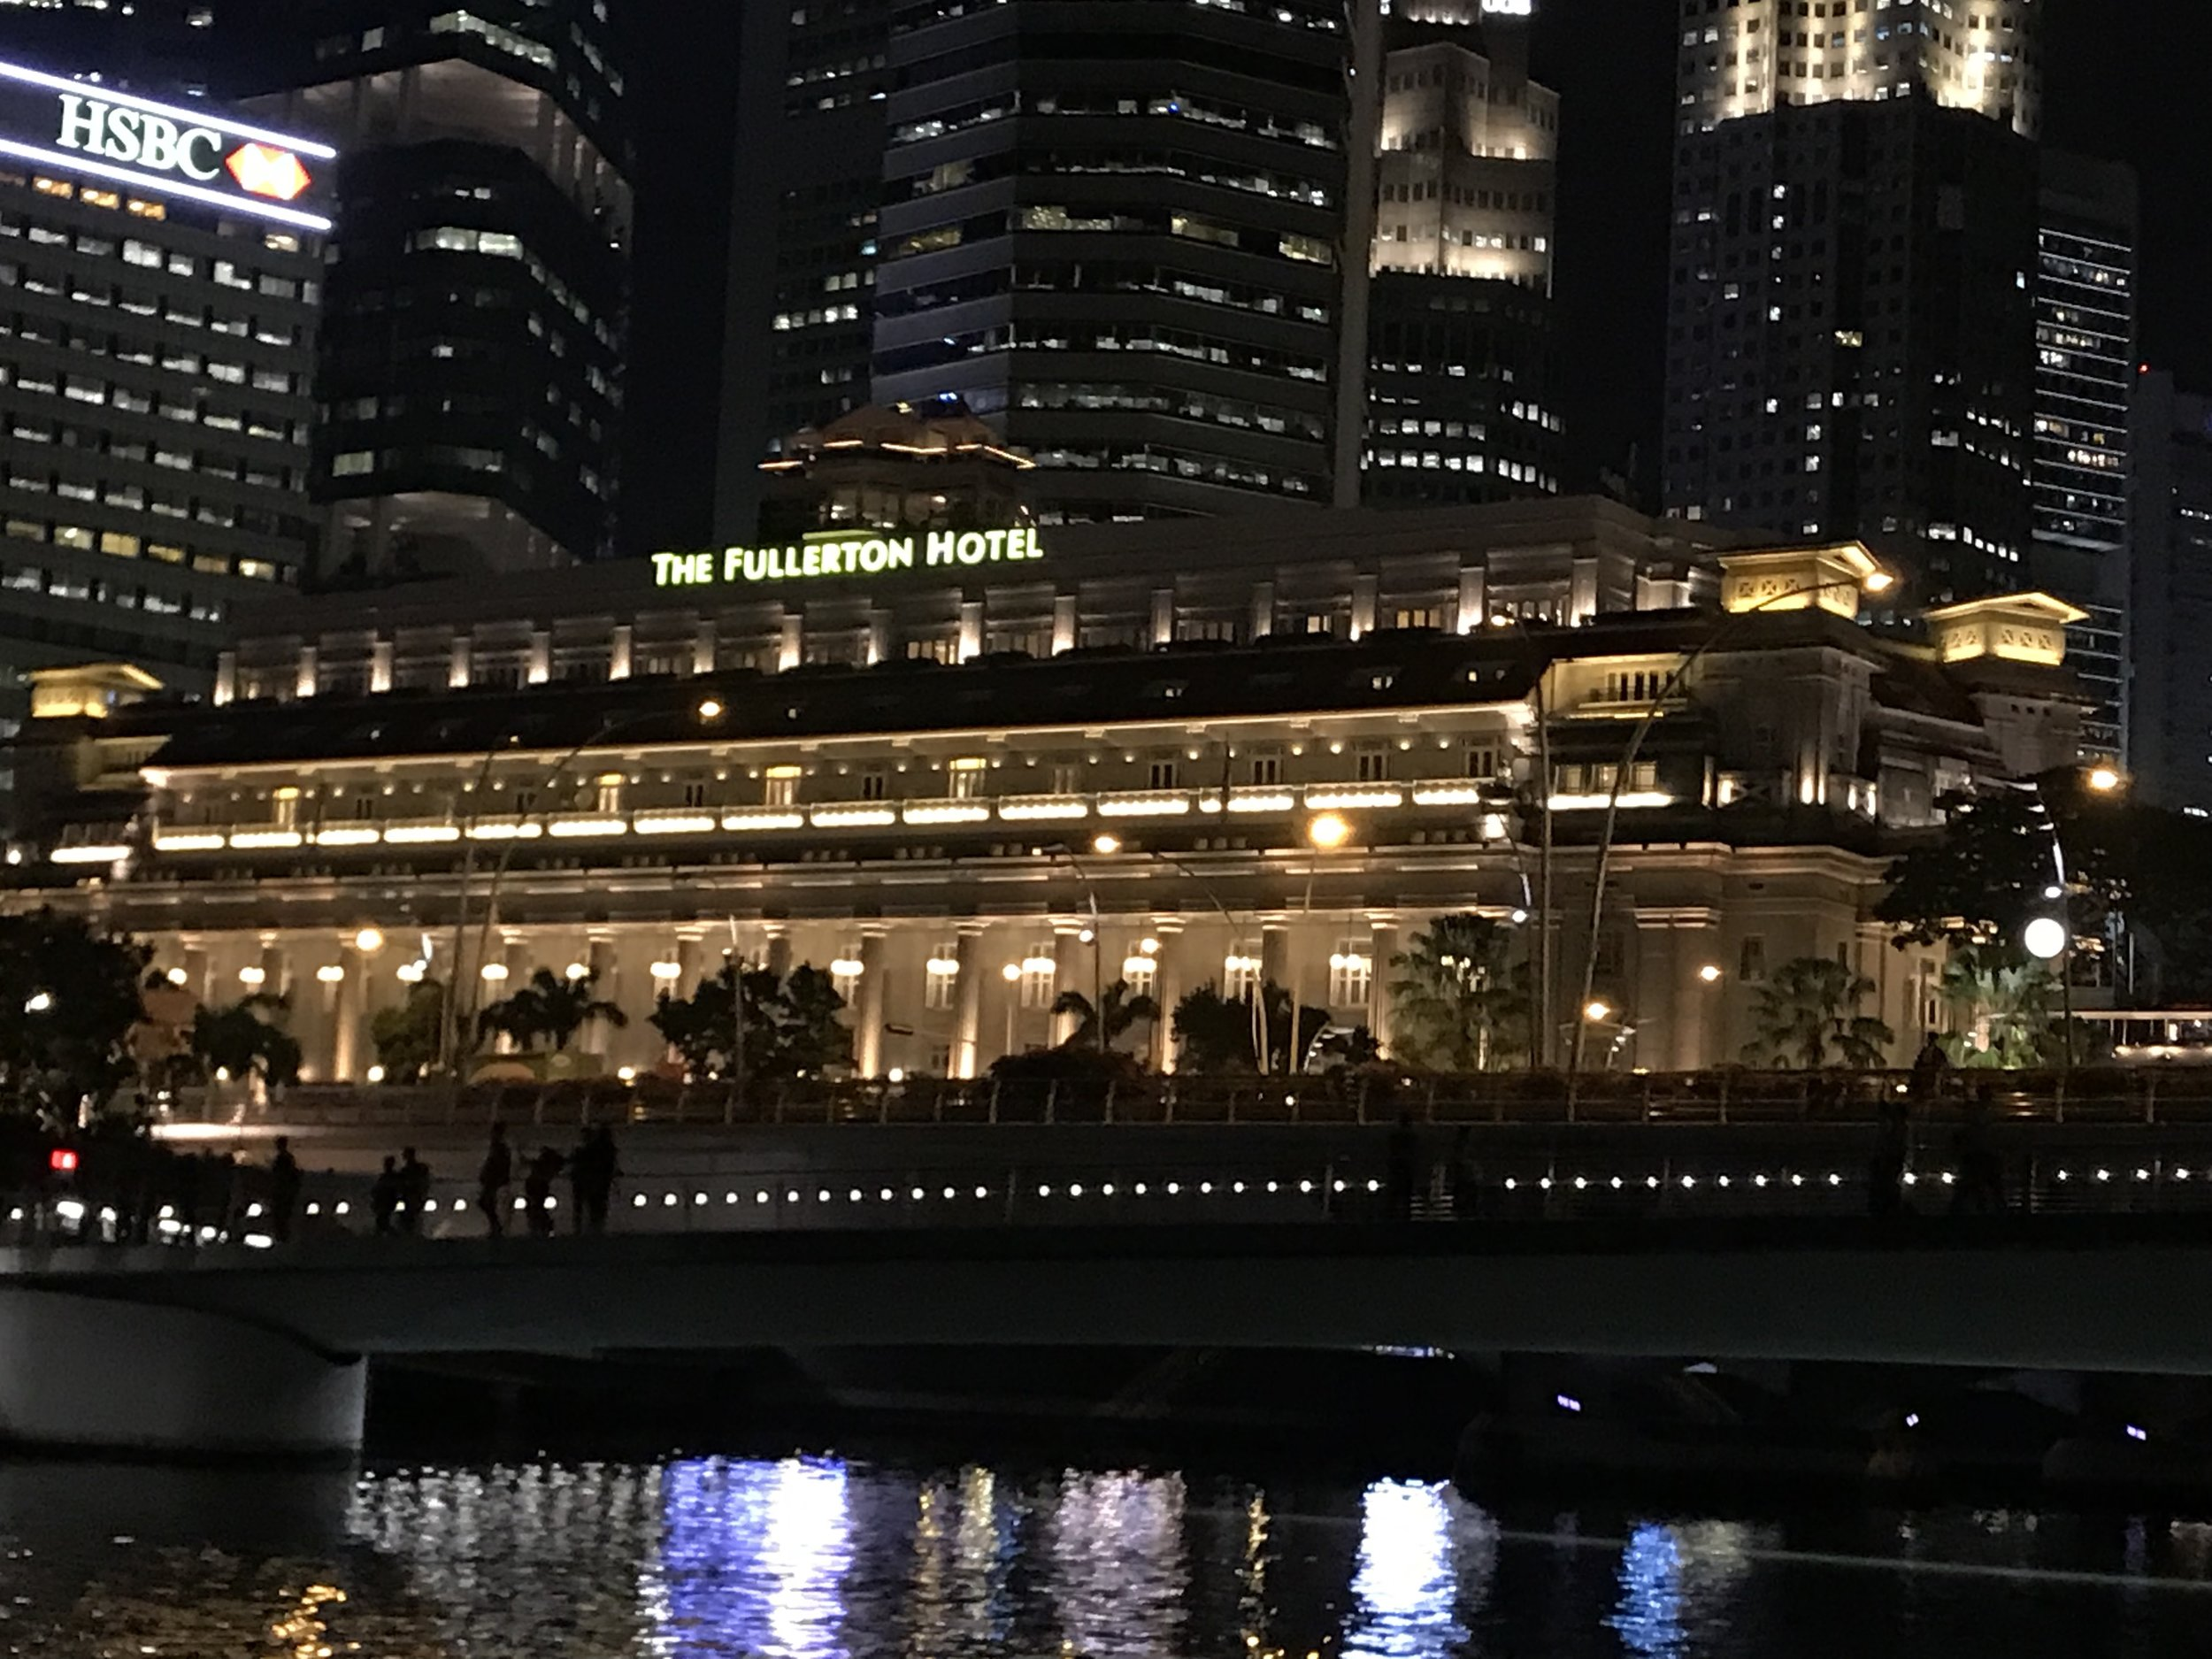 take your night shot of The Fullerton on your singapore trip